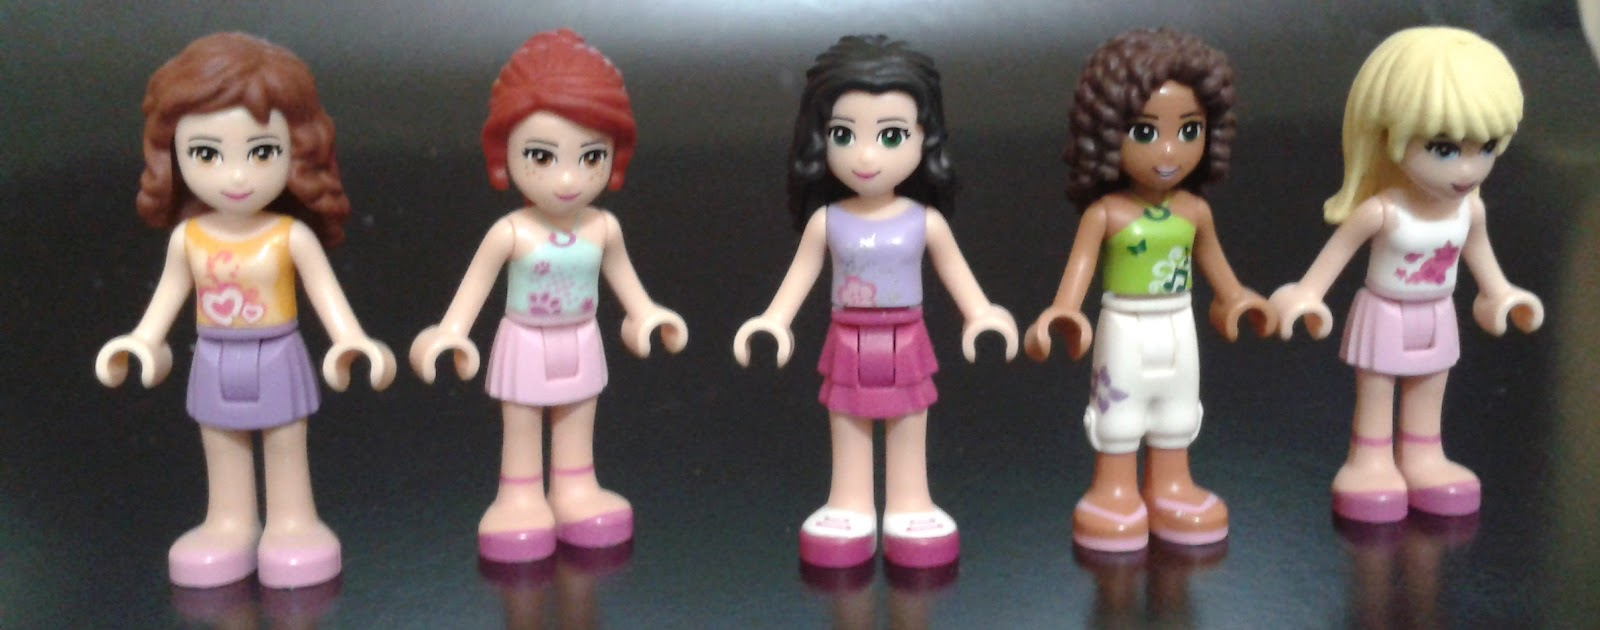 Ace Swan Blog Lego Friends Collection